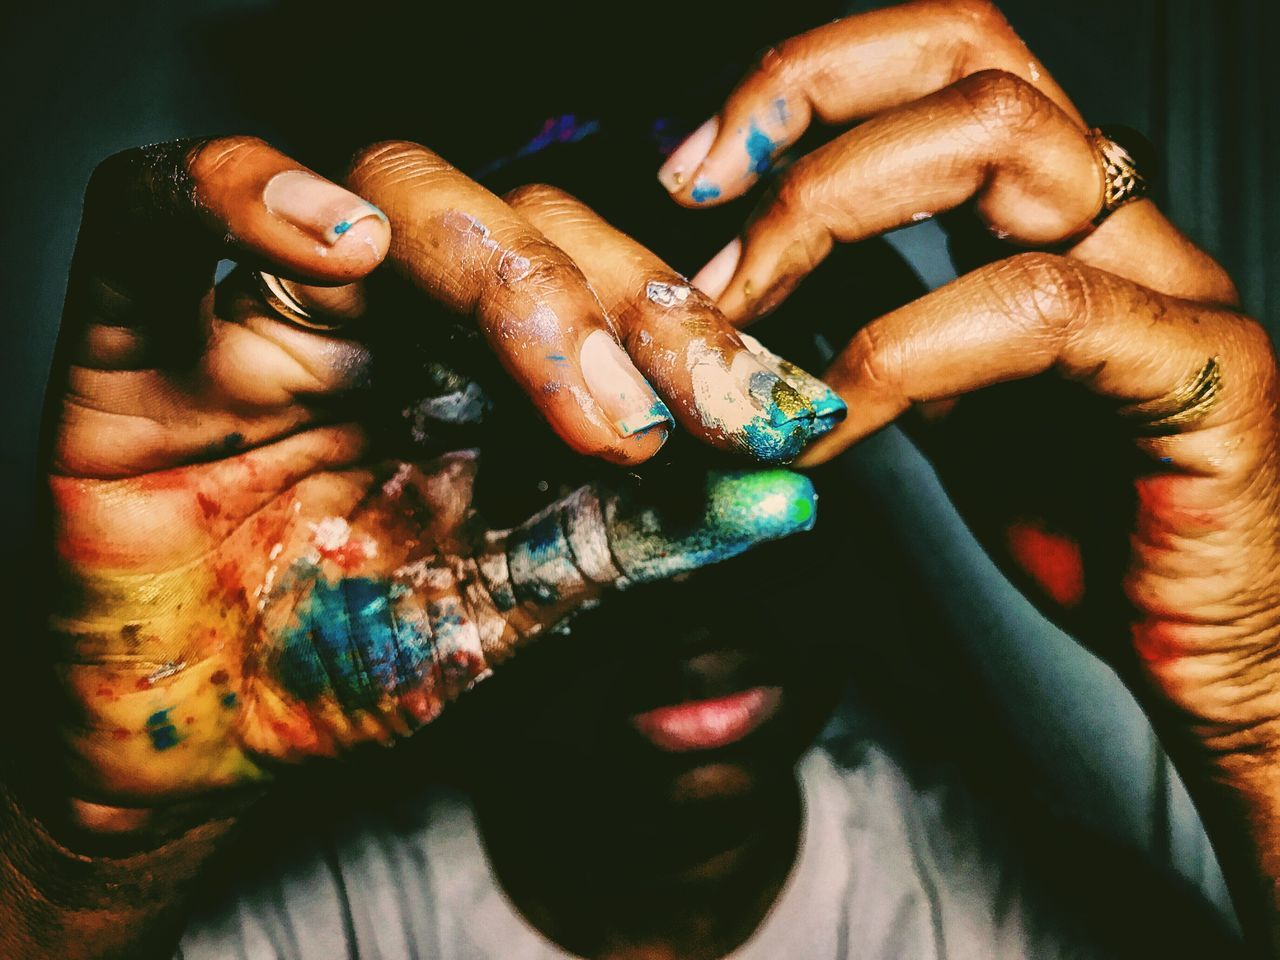 EyeEm Selects Touch of colors... human hand mobilephotography close-up shotoniphone7 photooftheday iPhoneography phonePhotography iPhone Photography VSCO Snapseed